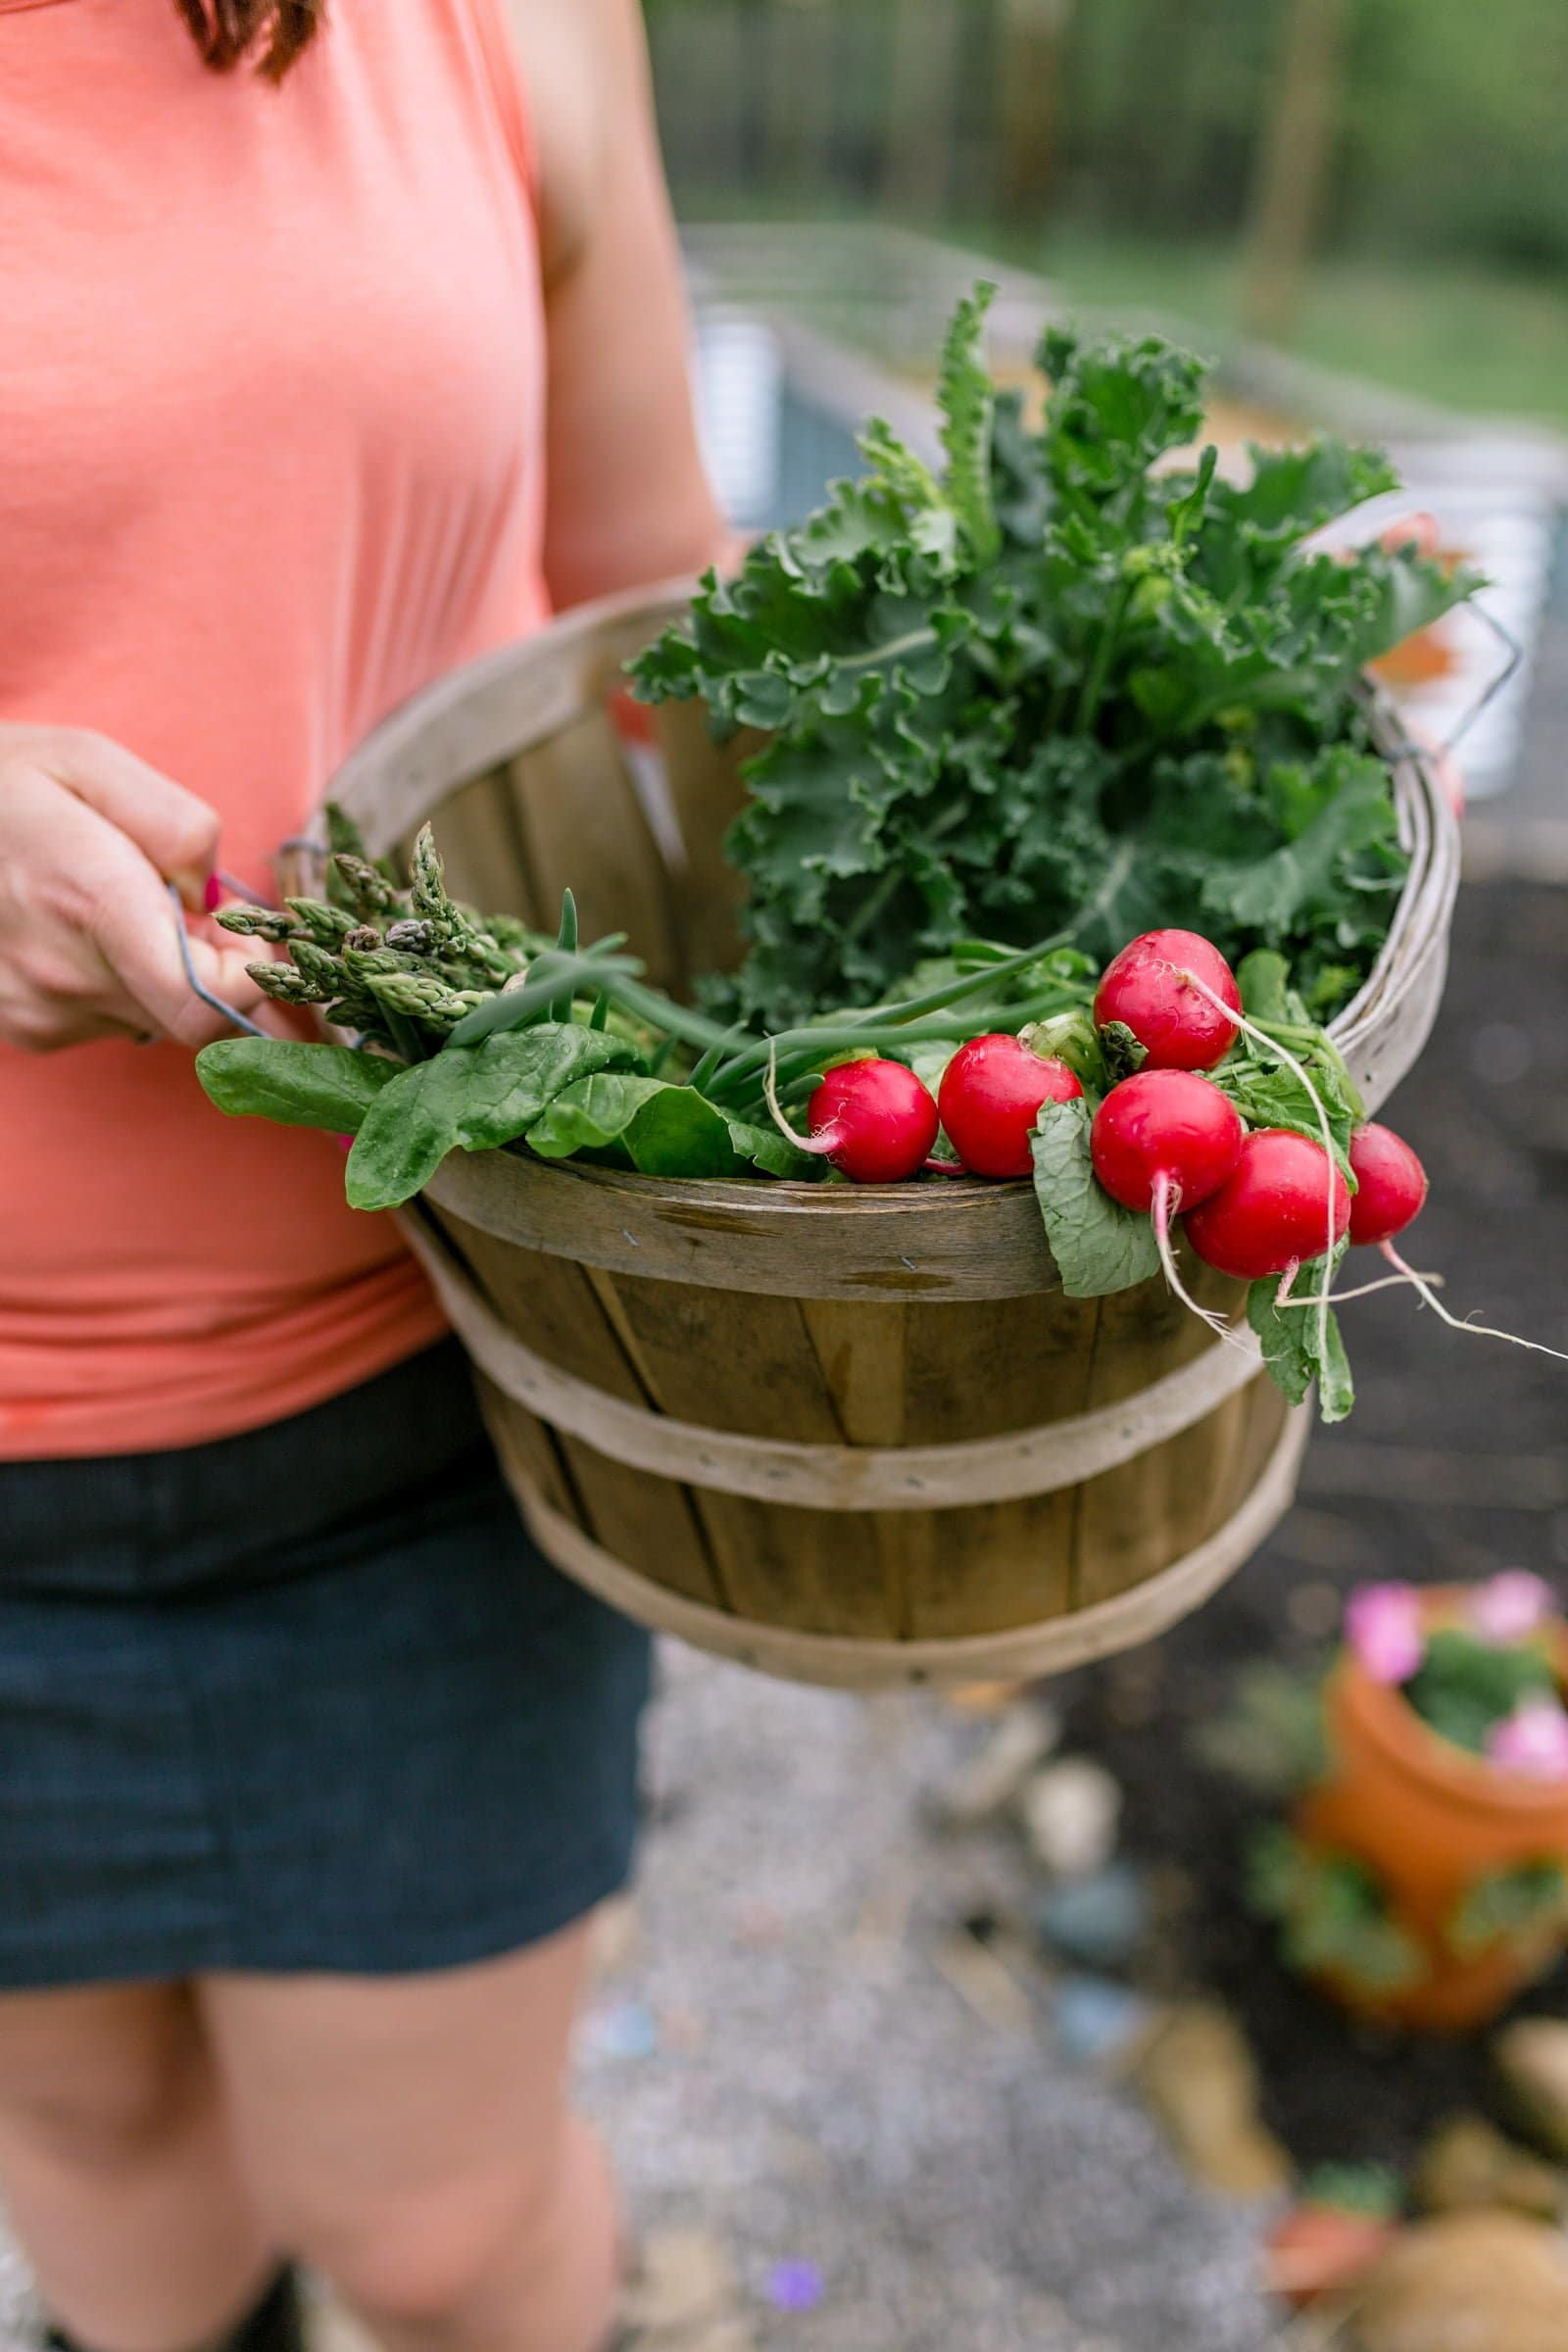 Woman in a coral shirt holding a basket of radishes and greens